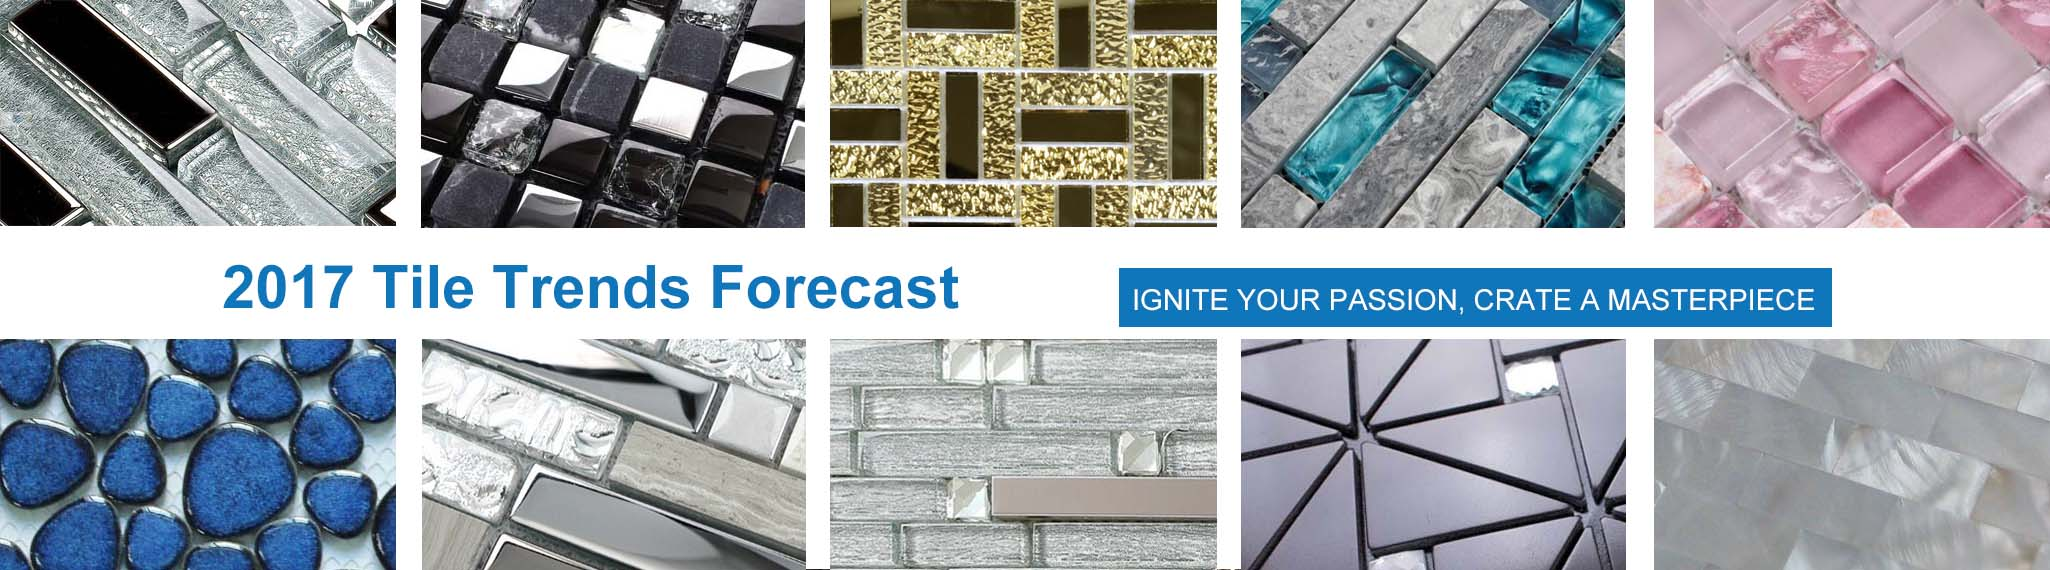 2017 tile trends forecast - super deals mosaic